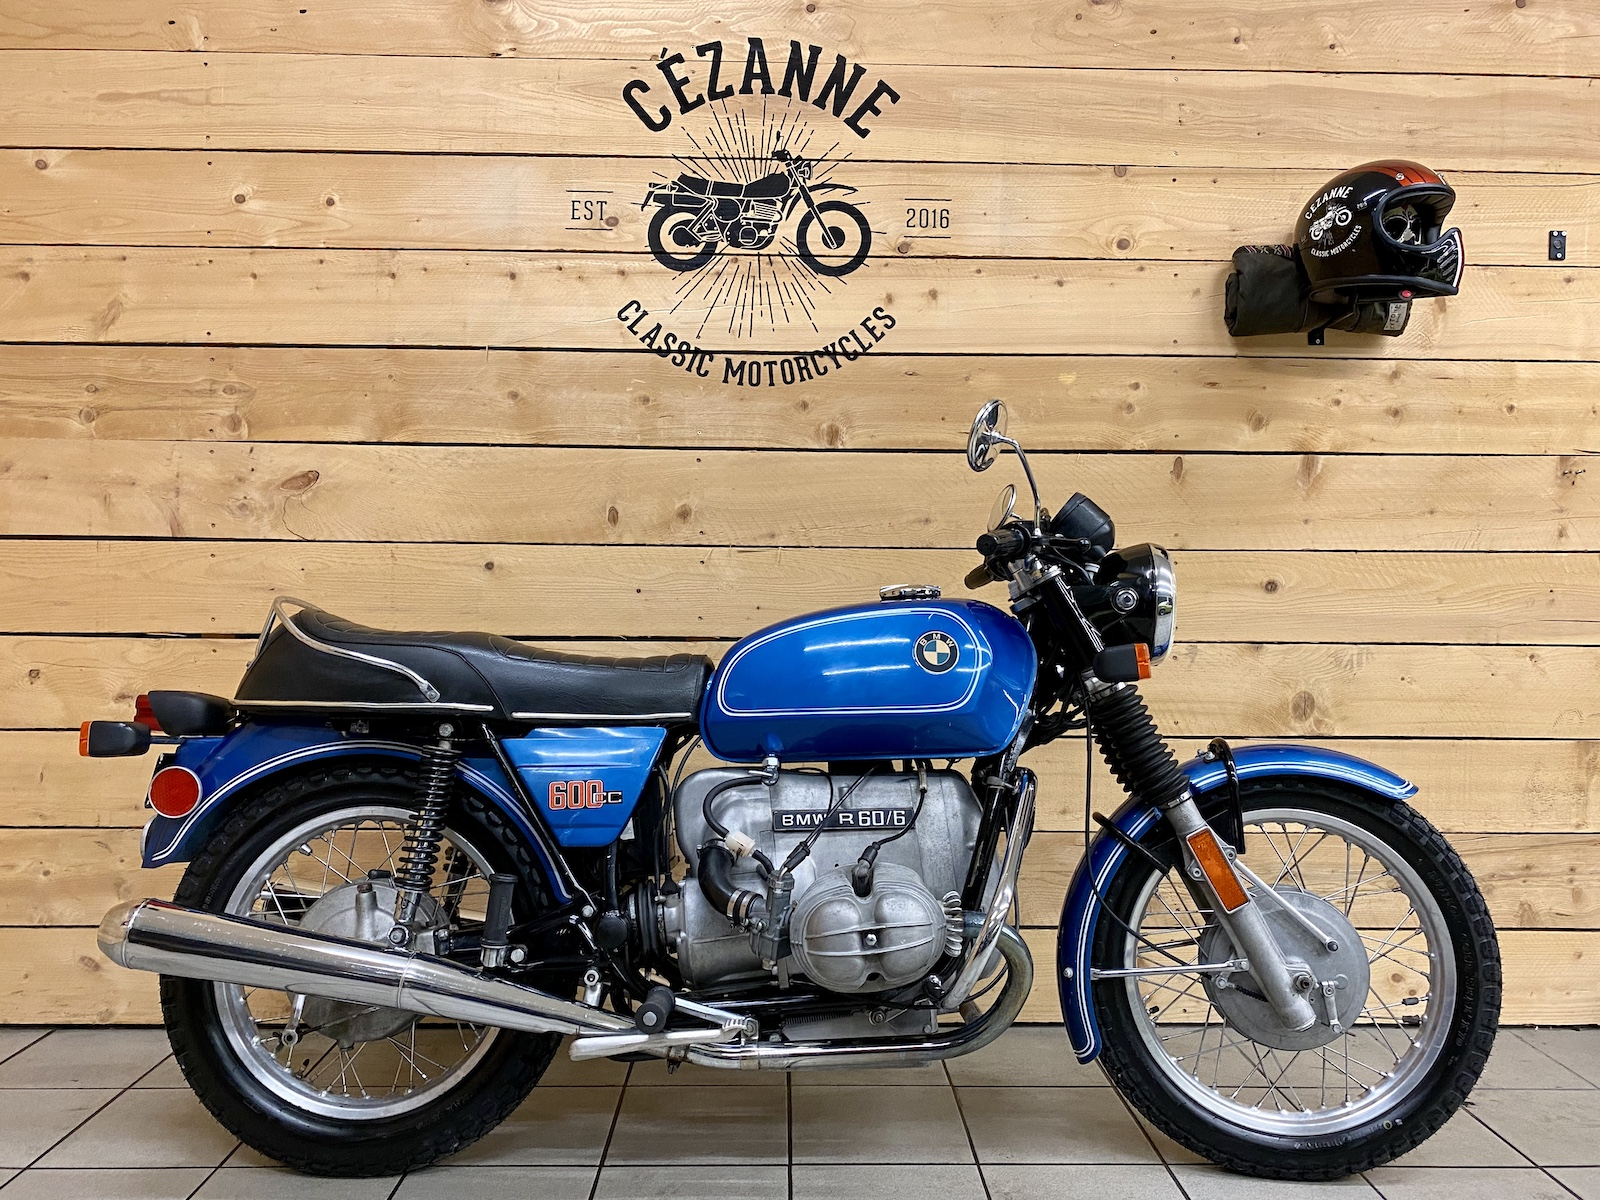 bmw_r60_676_cezanne_classic_motorcycle_2-80.jpg